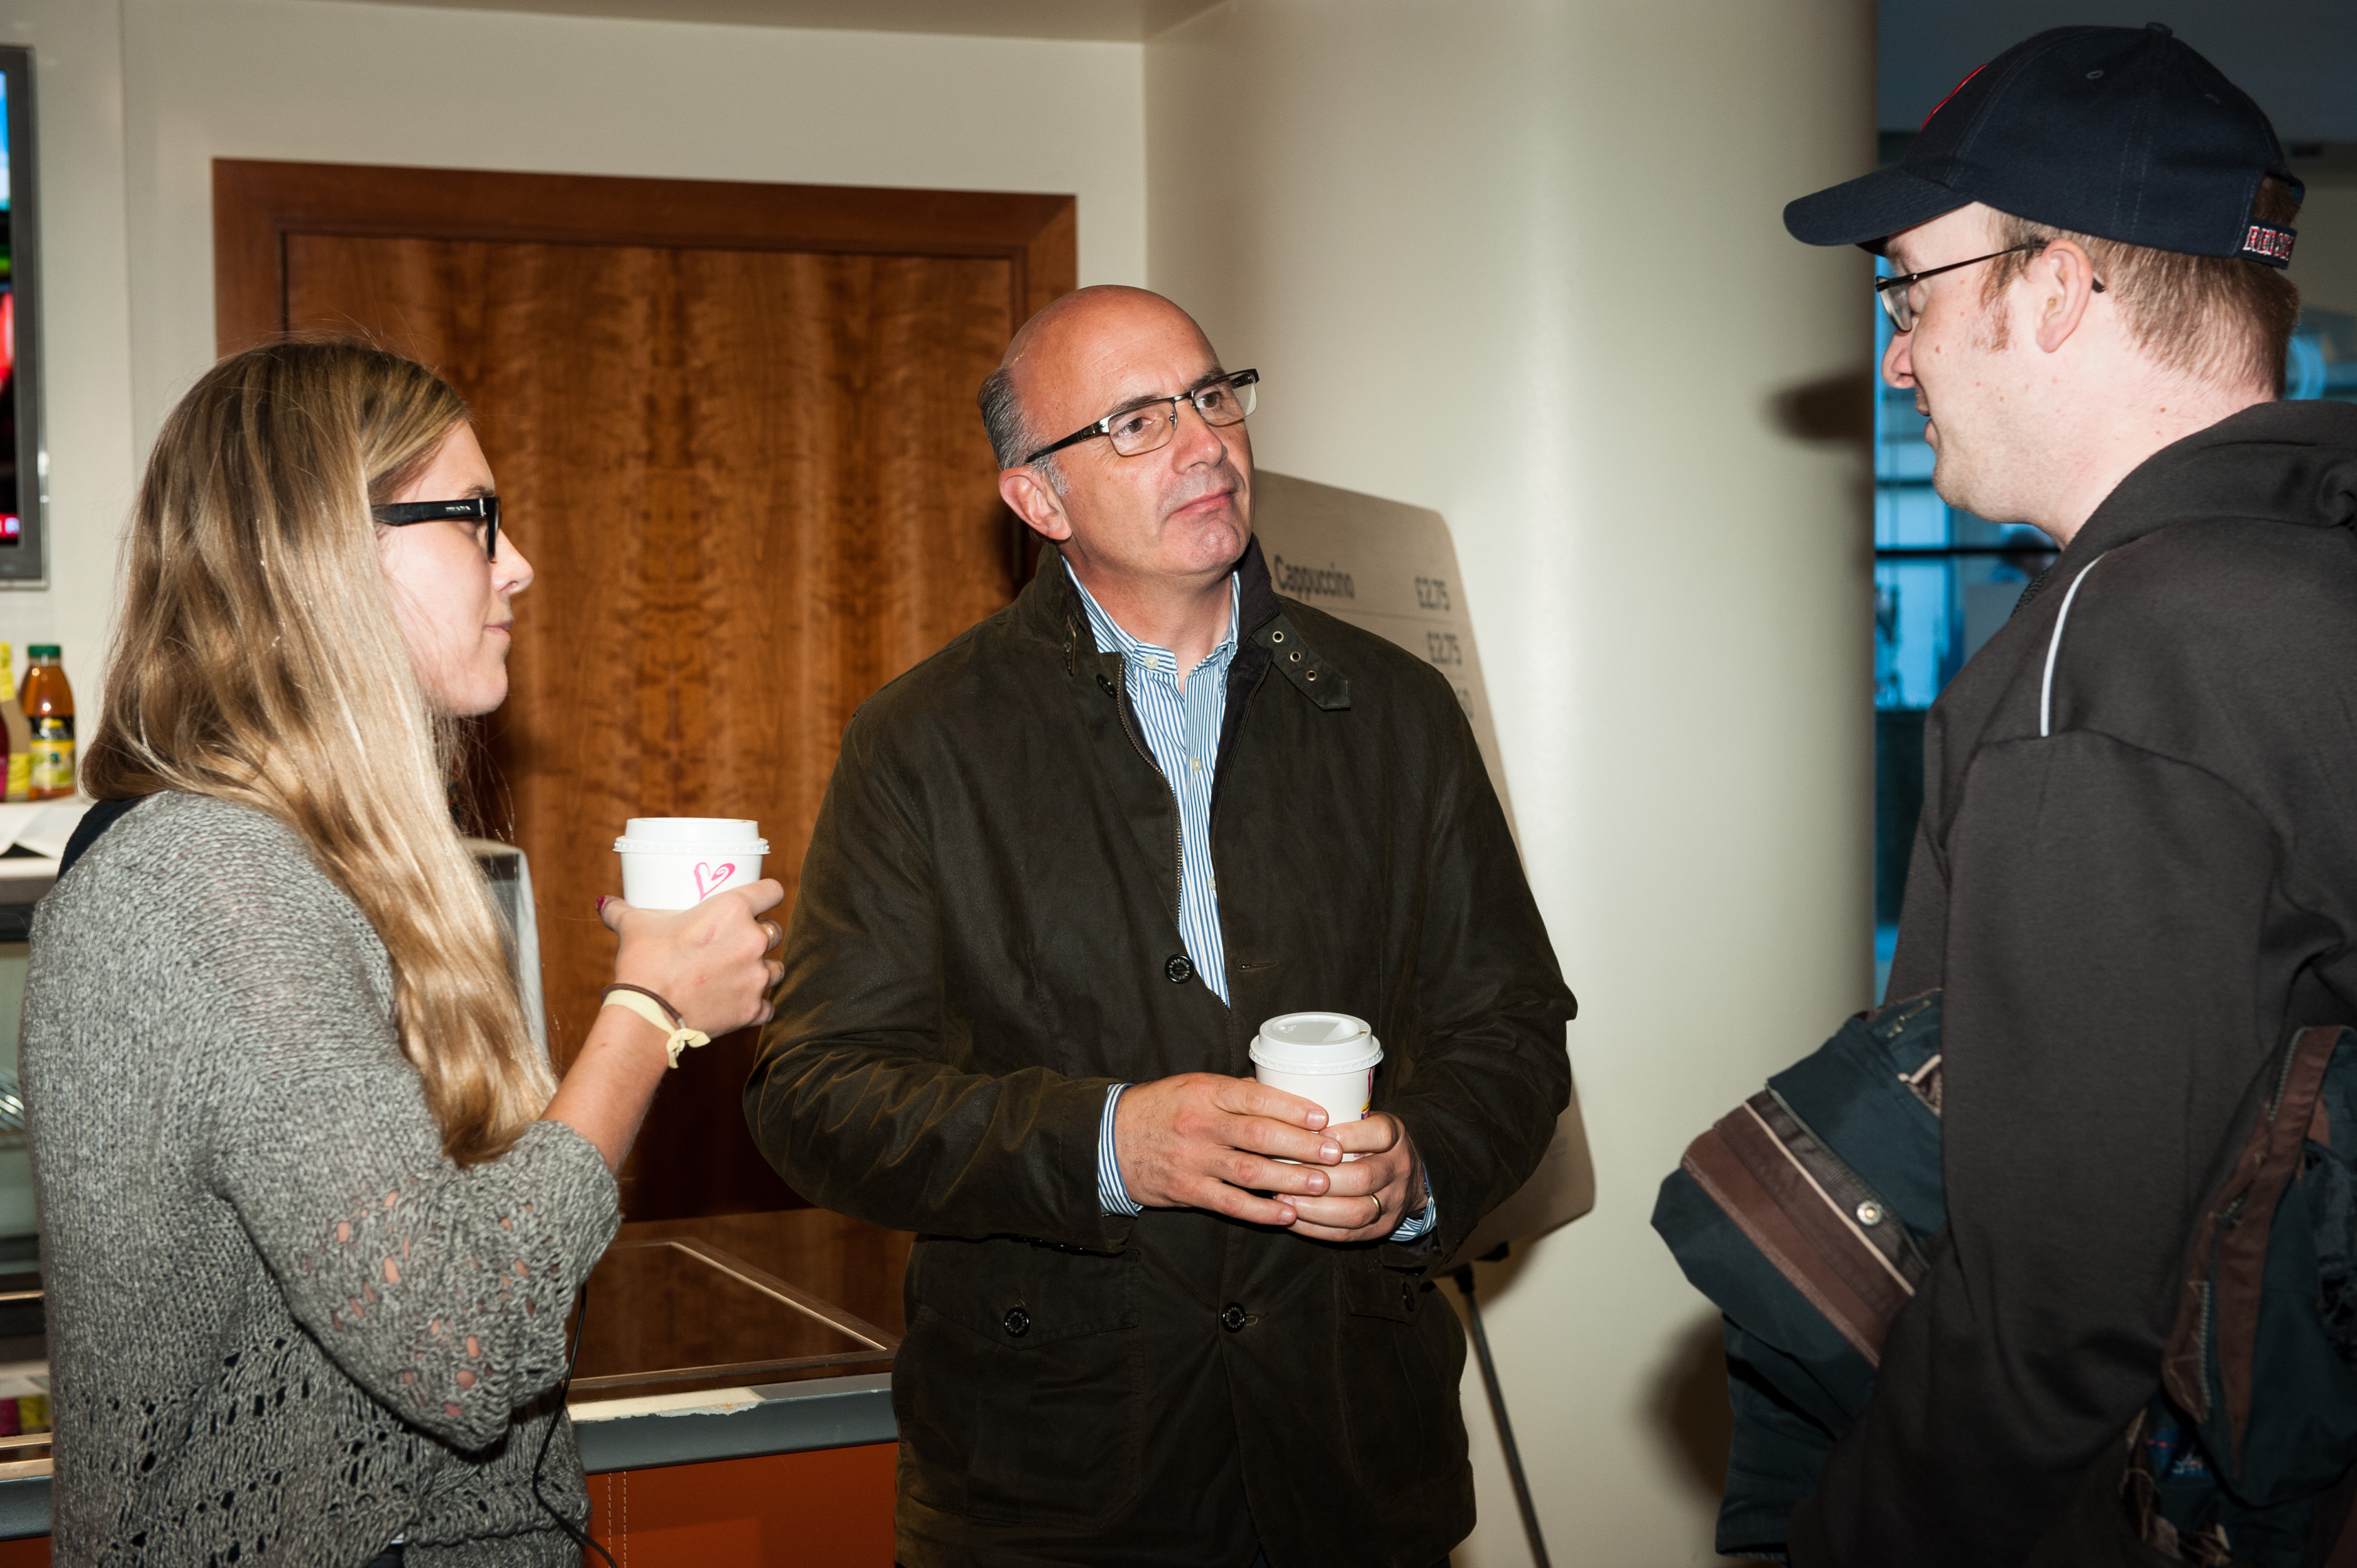 Open Invention Network CEO Keith Bergelt, center, speaks with Linux Foundation staffer Maresa Fowler, left, and OIN representative Armijn Hemel in 2013.